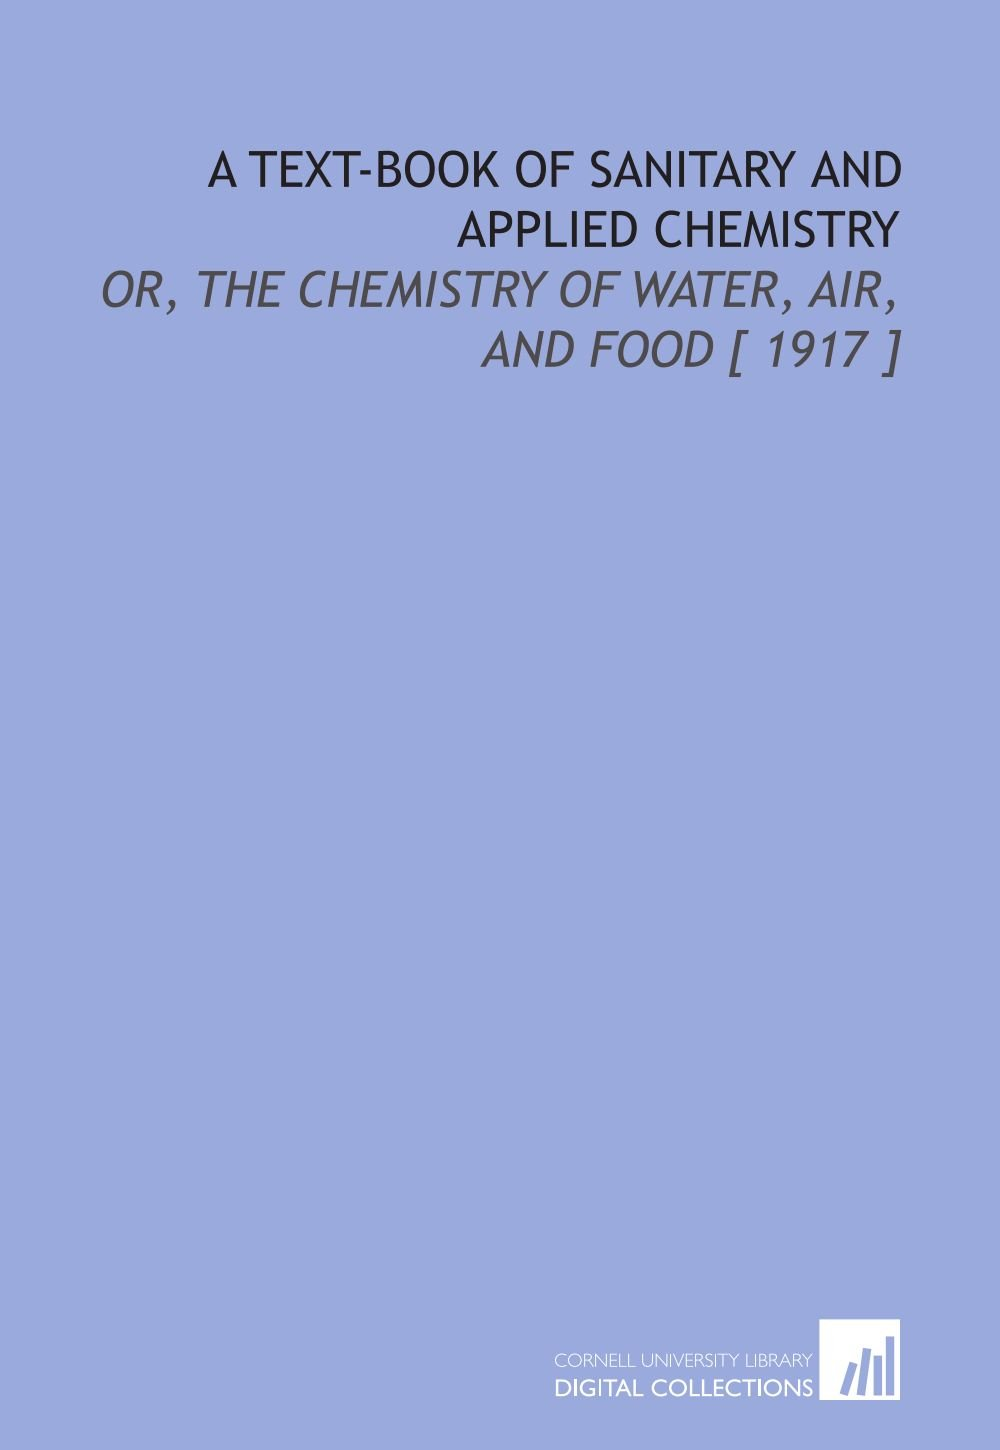 A Text-Book of Sanitary and Applied Chemistry: Or, the Chemistry of Water, Air, and Food [ 1917 ] ebook